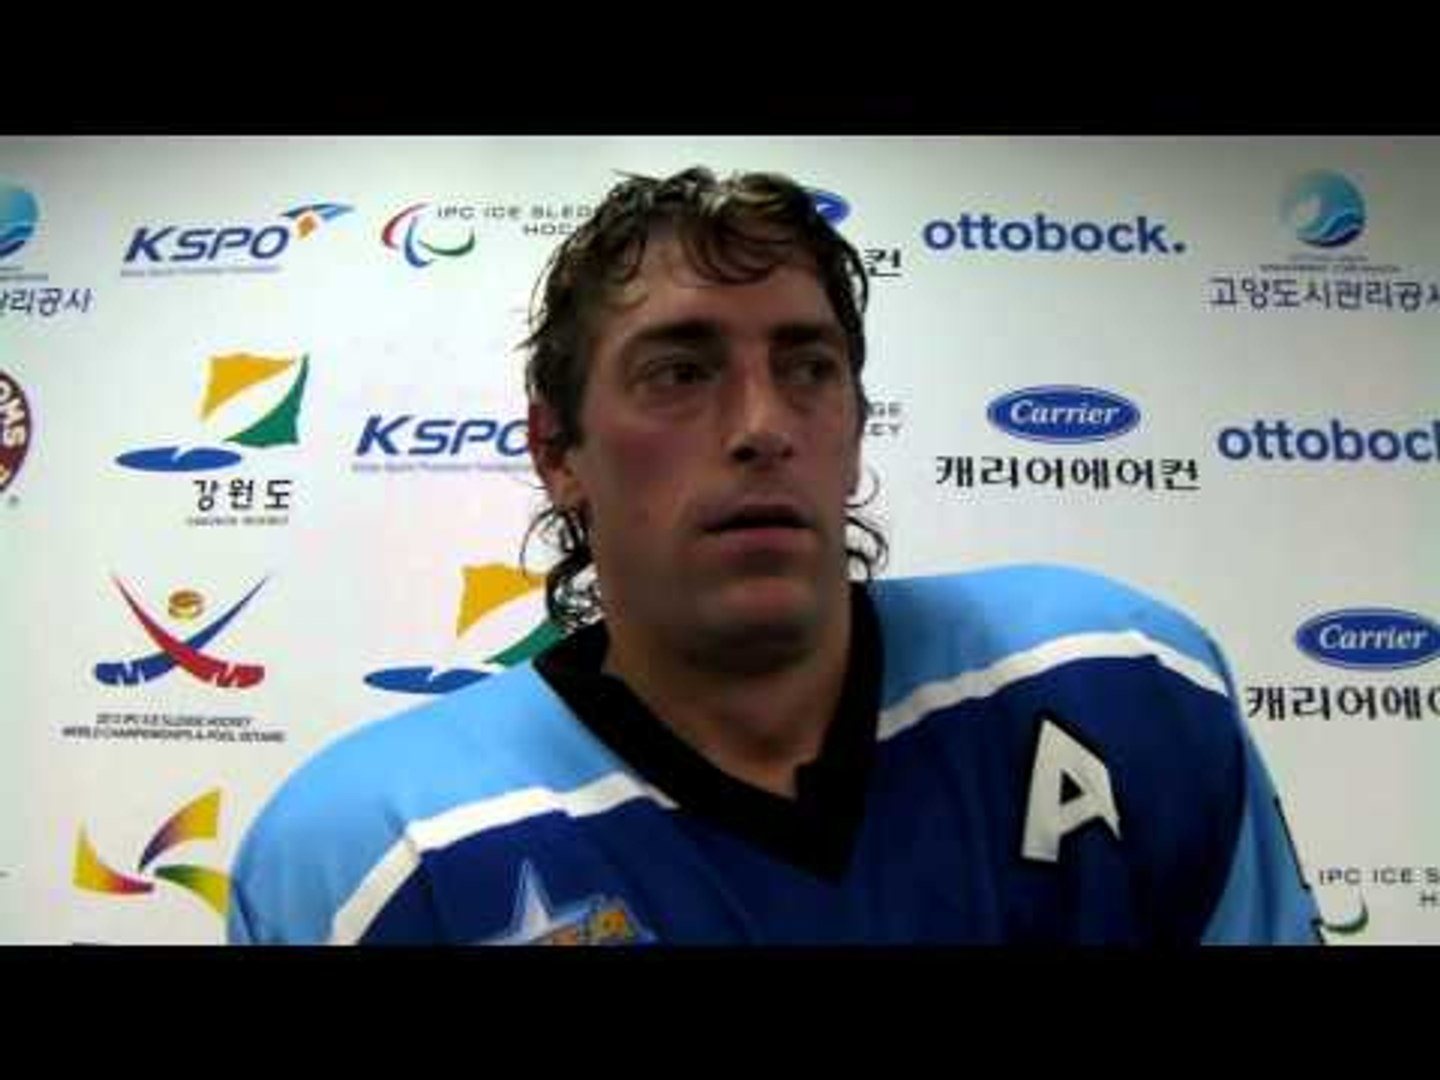 Italy's Florian Planker - 2013 IPC Ice Sledge Hockey World Championships A-Pool Goyang